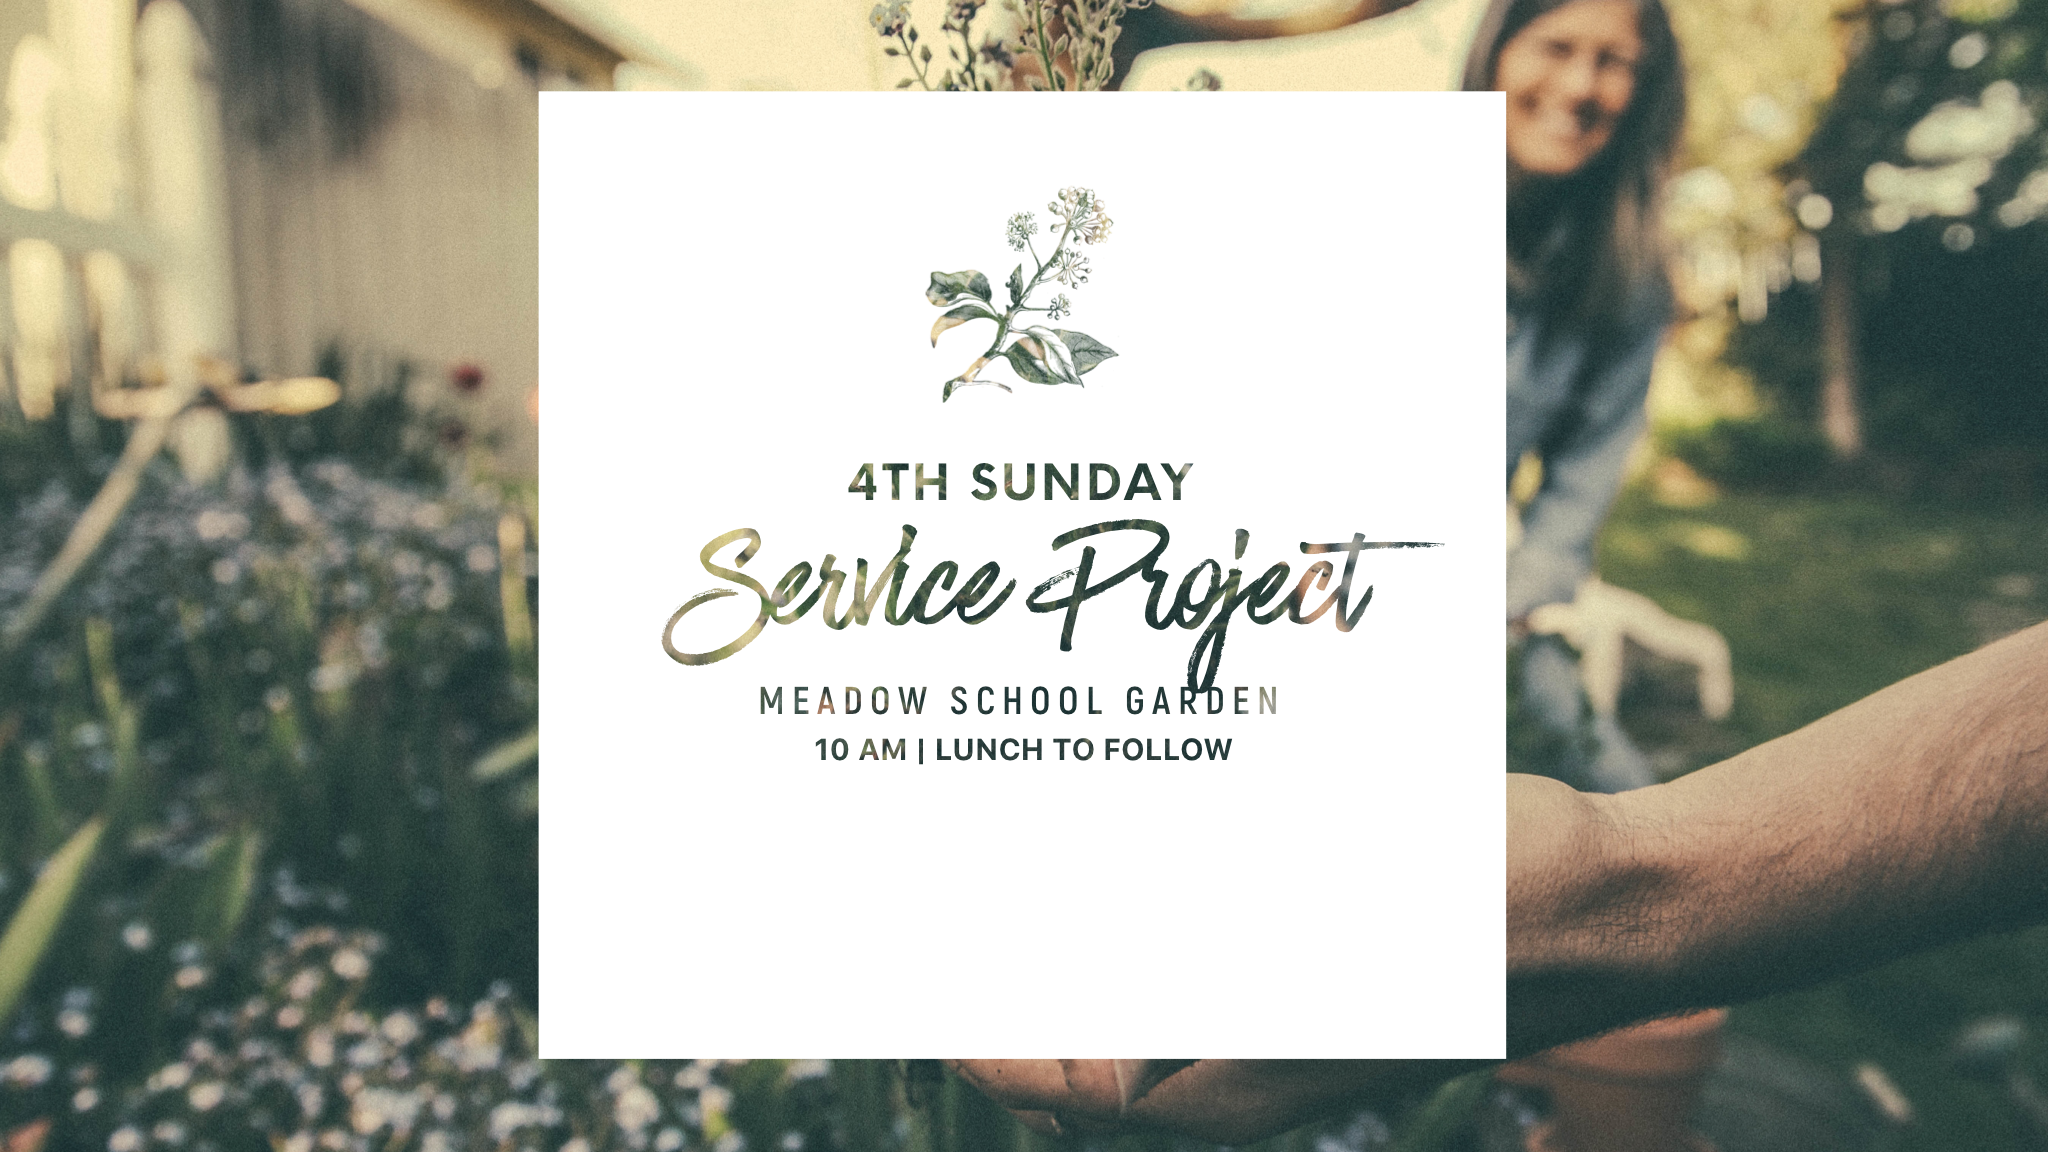 The Parish Church_Service Project Meadow.PNG